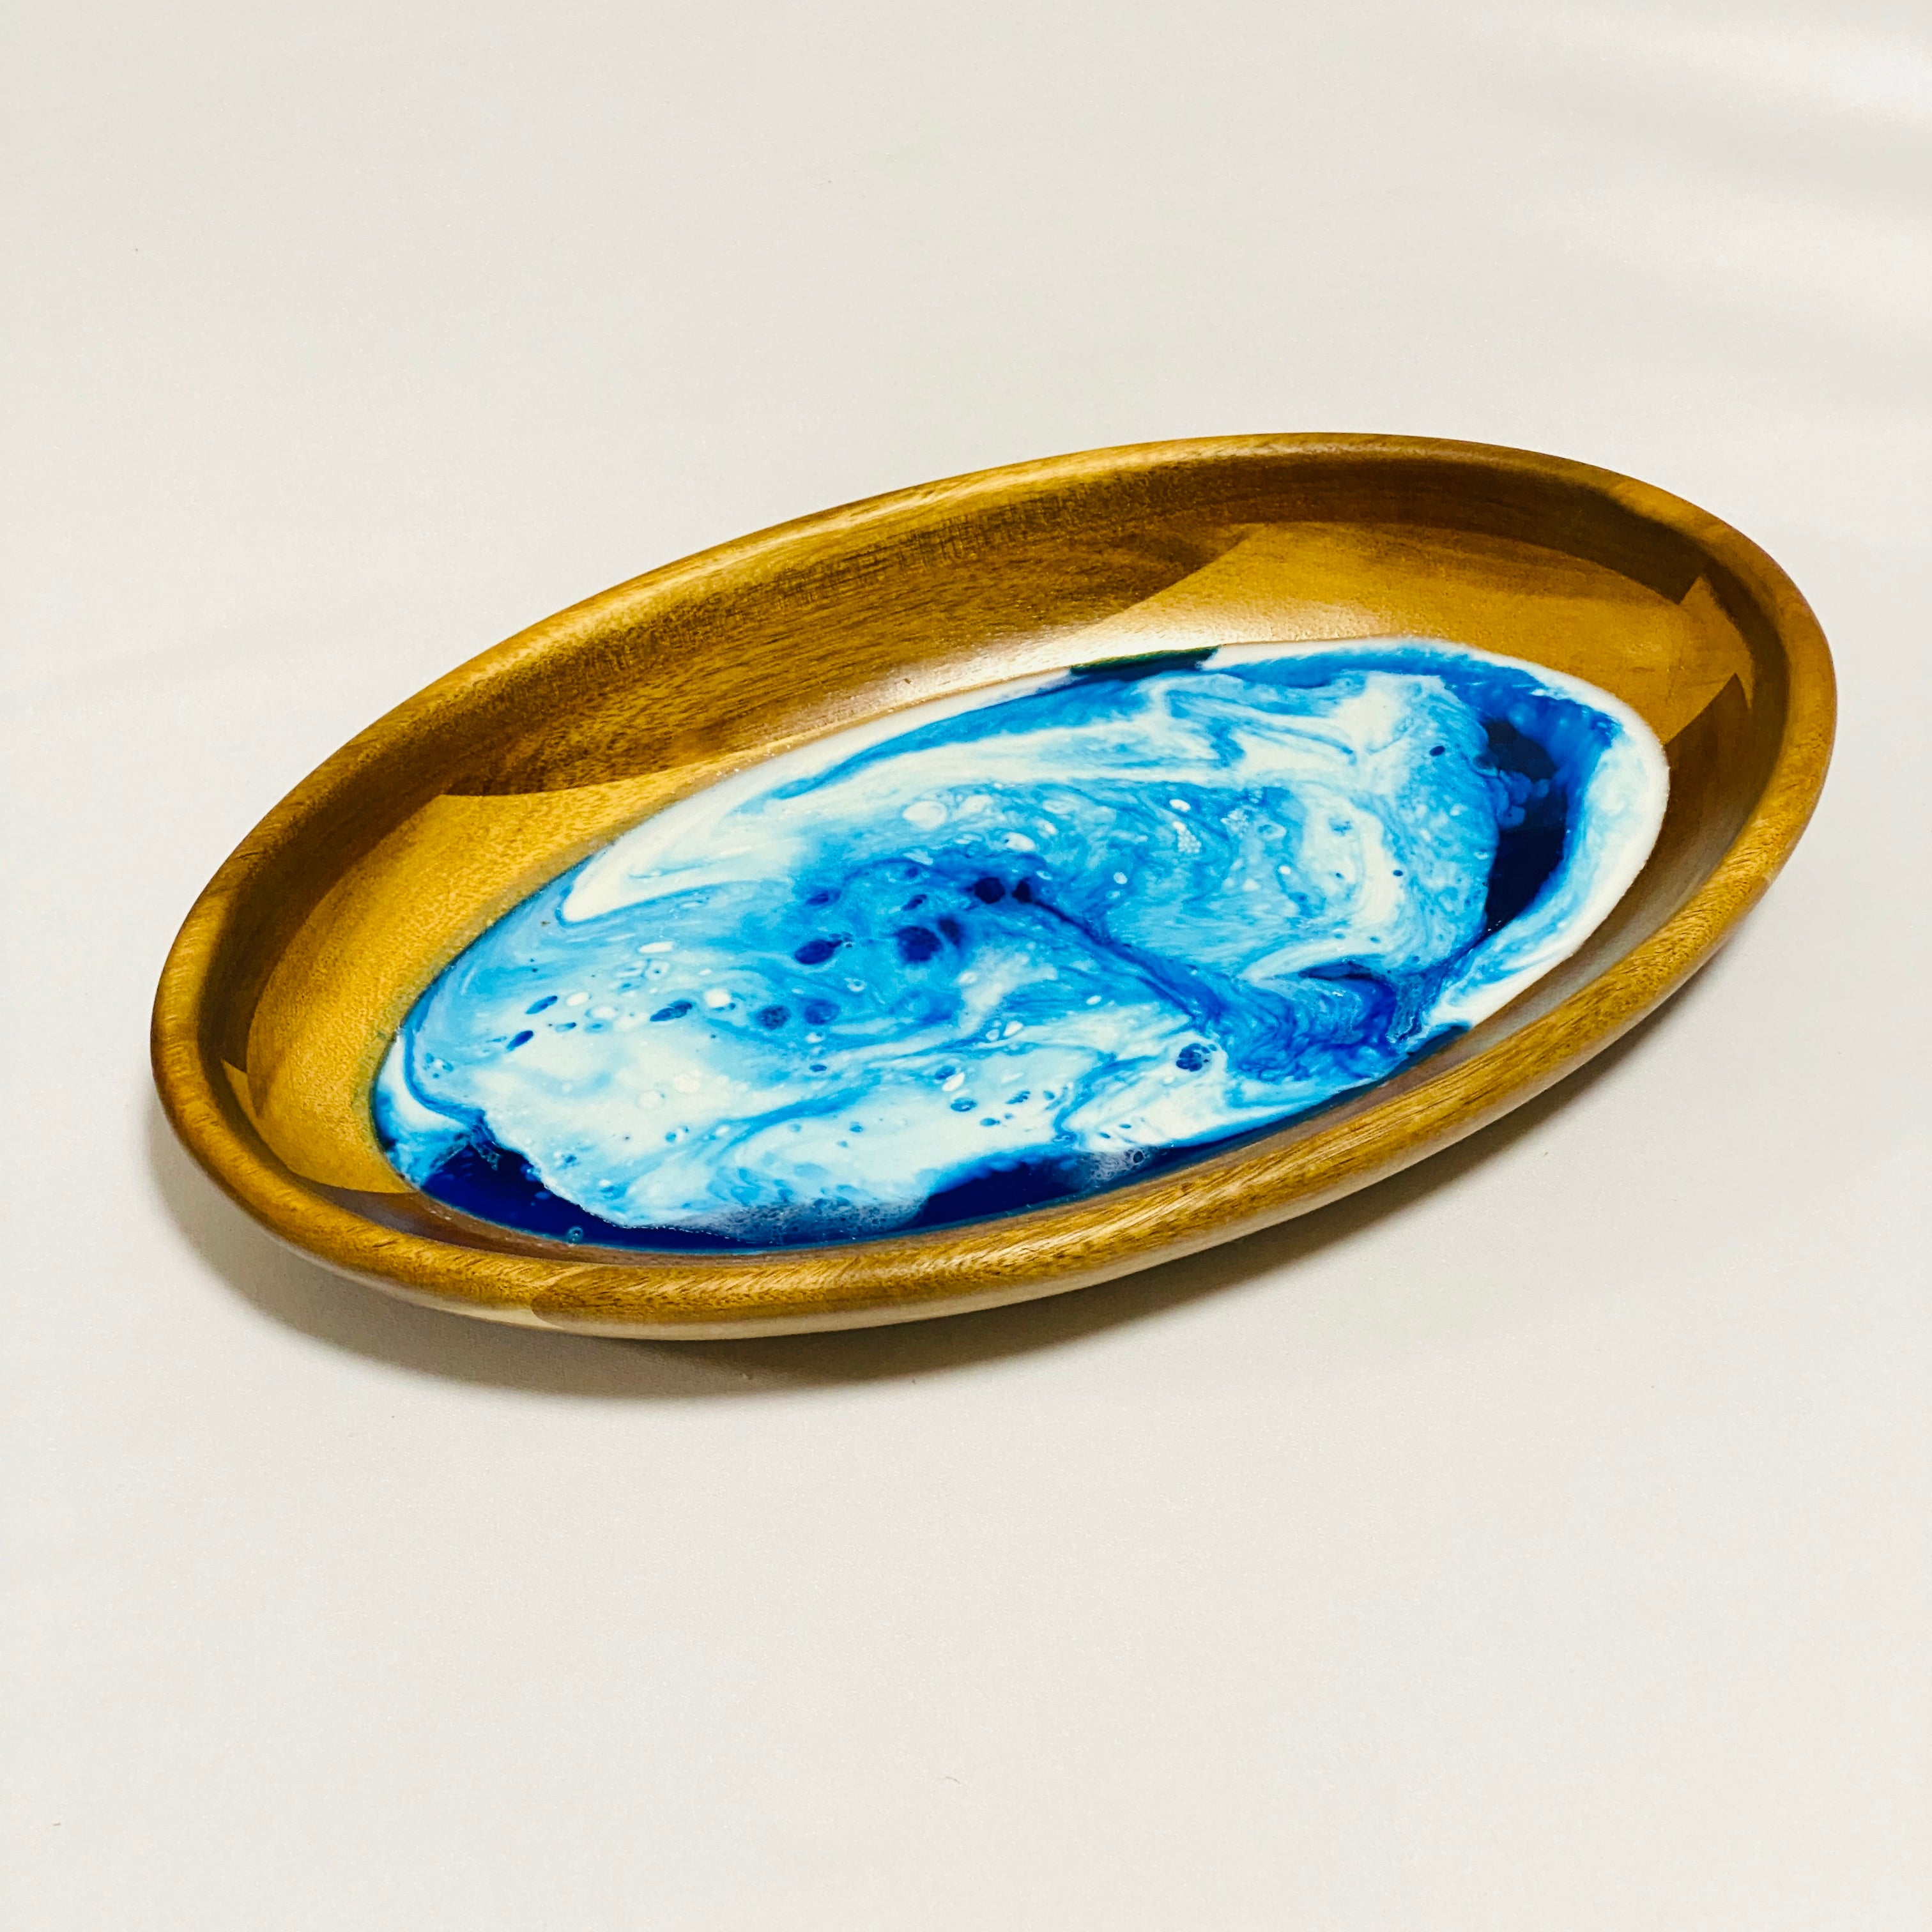 Small Oval Serving Dish - Blue & White